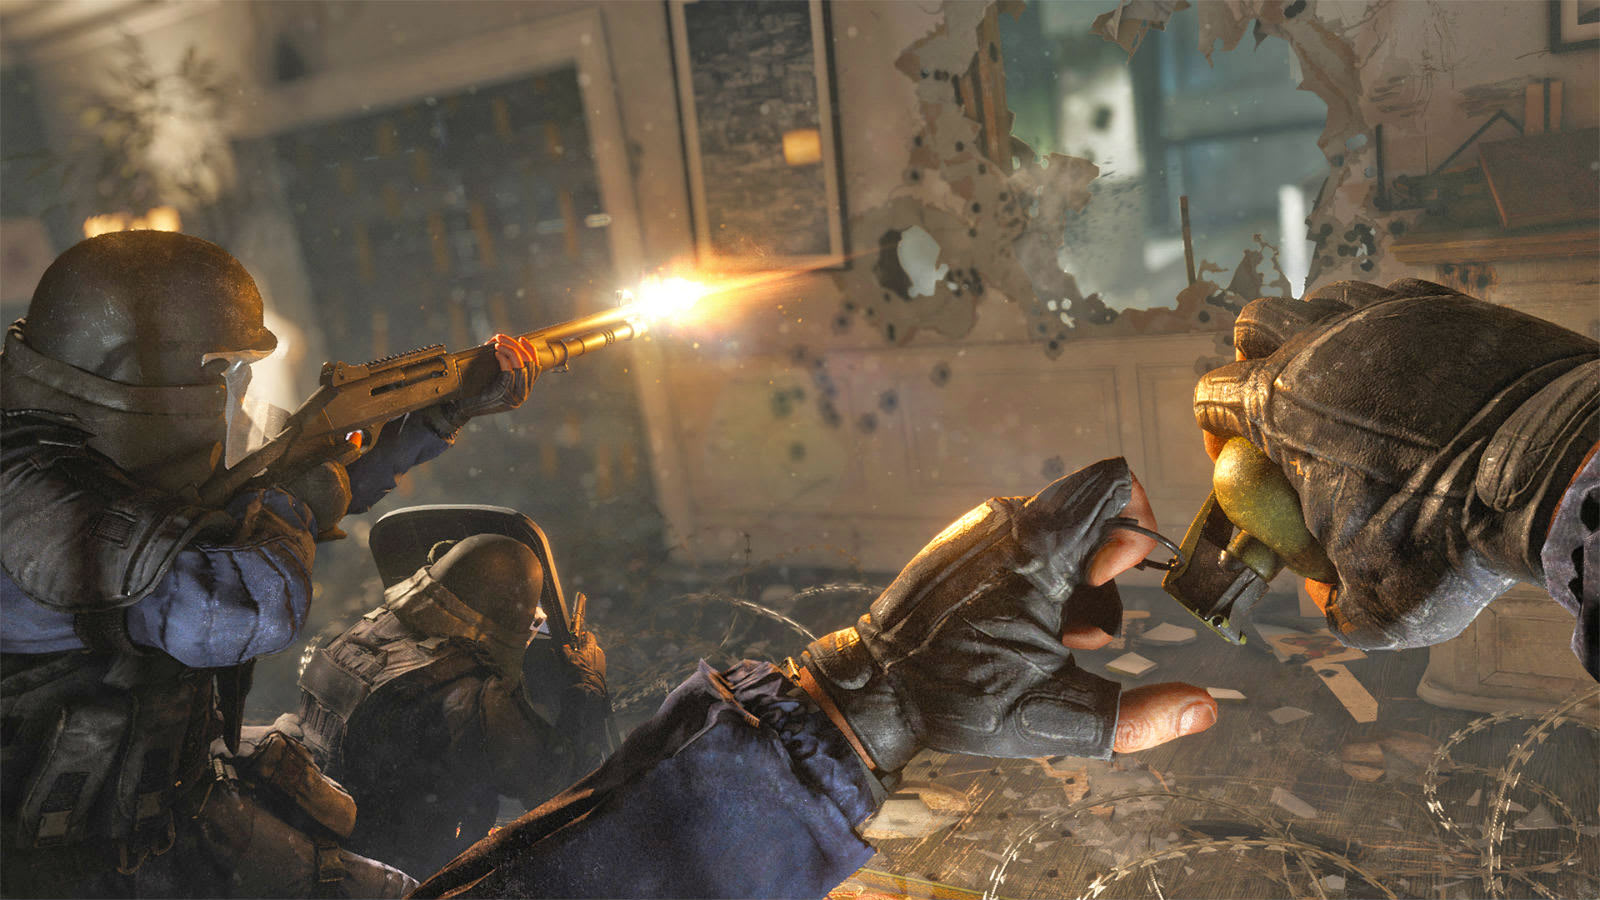 Rainbow Six Siege' update could make your PS4 crash (updated)